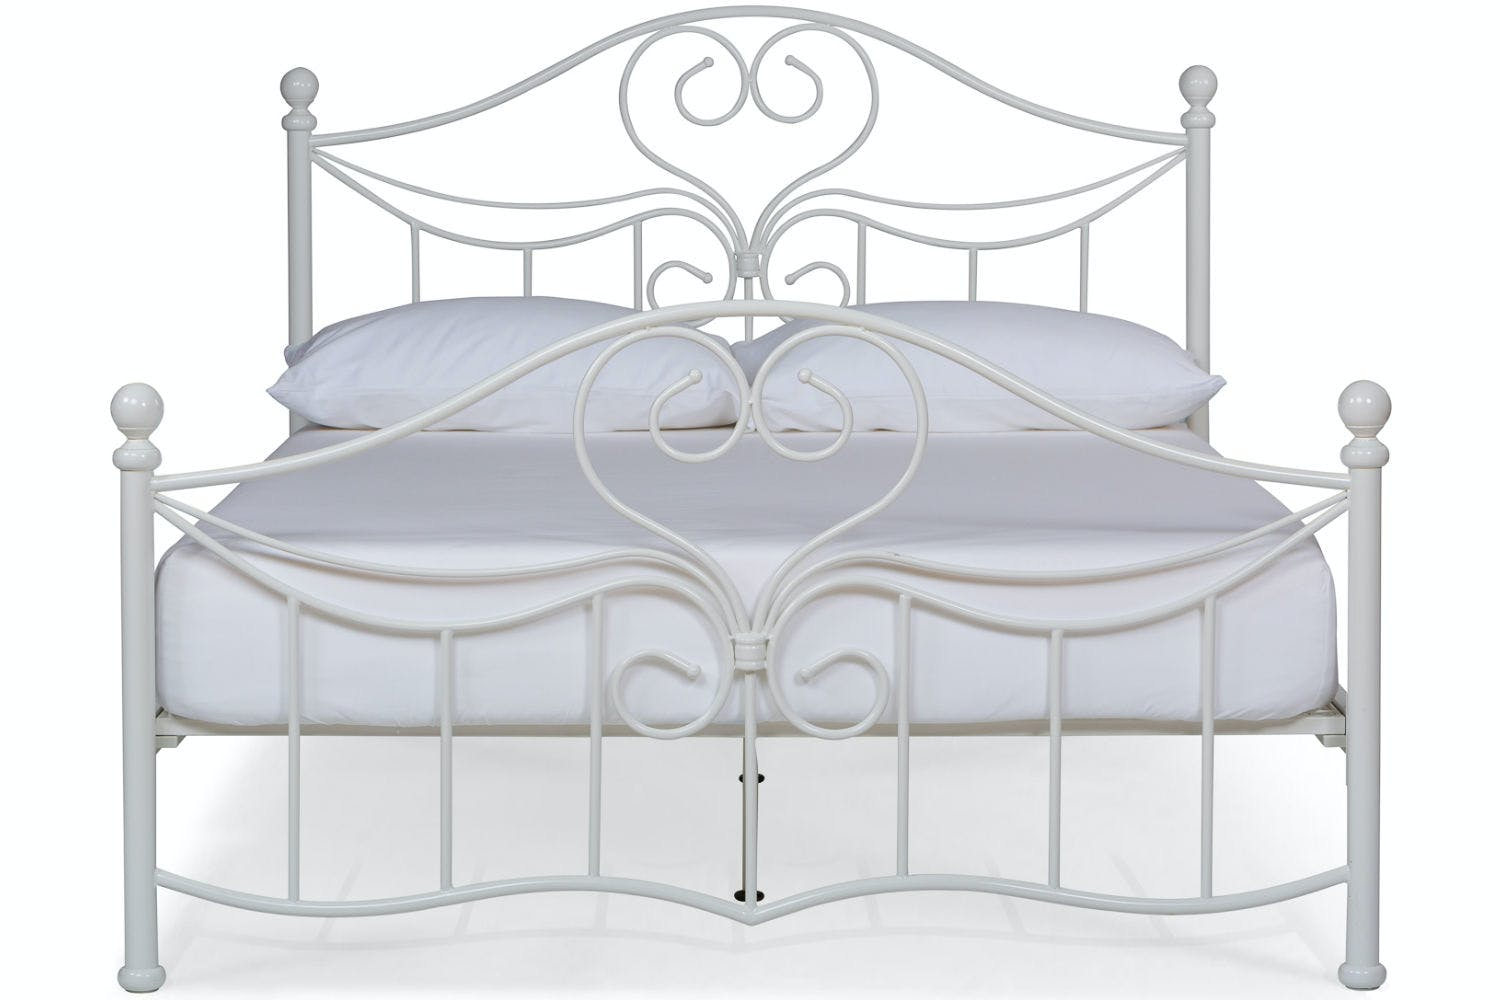 Julliet Small Double Metal Bed Frame 4ft White